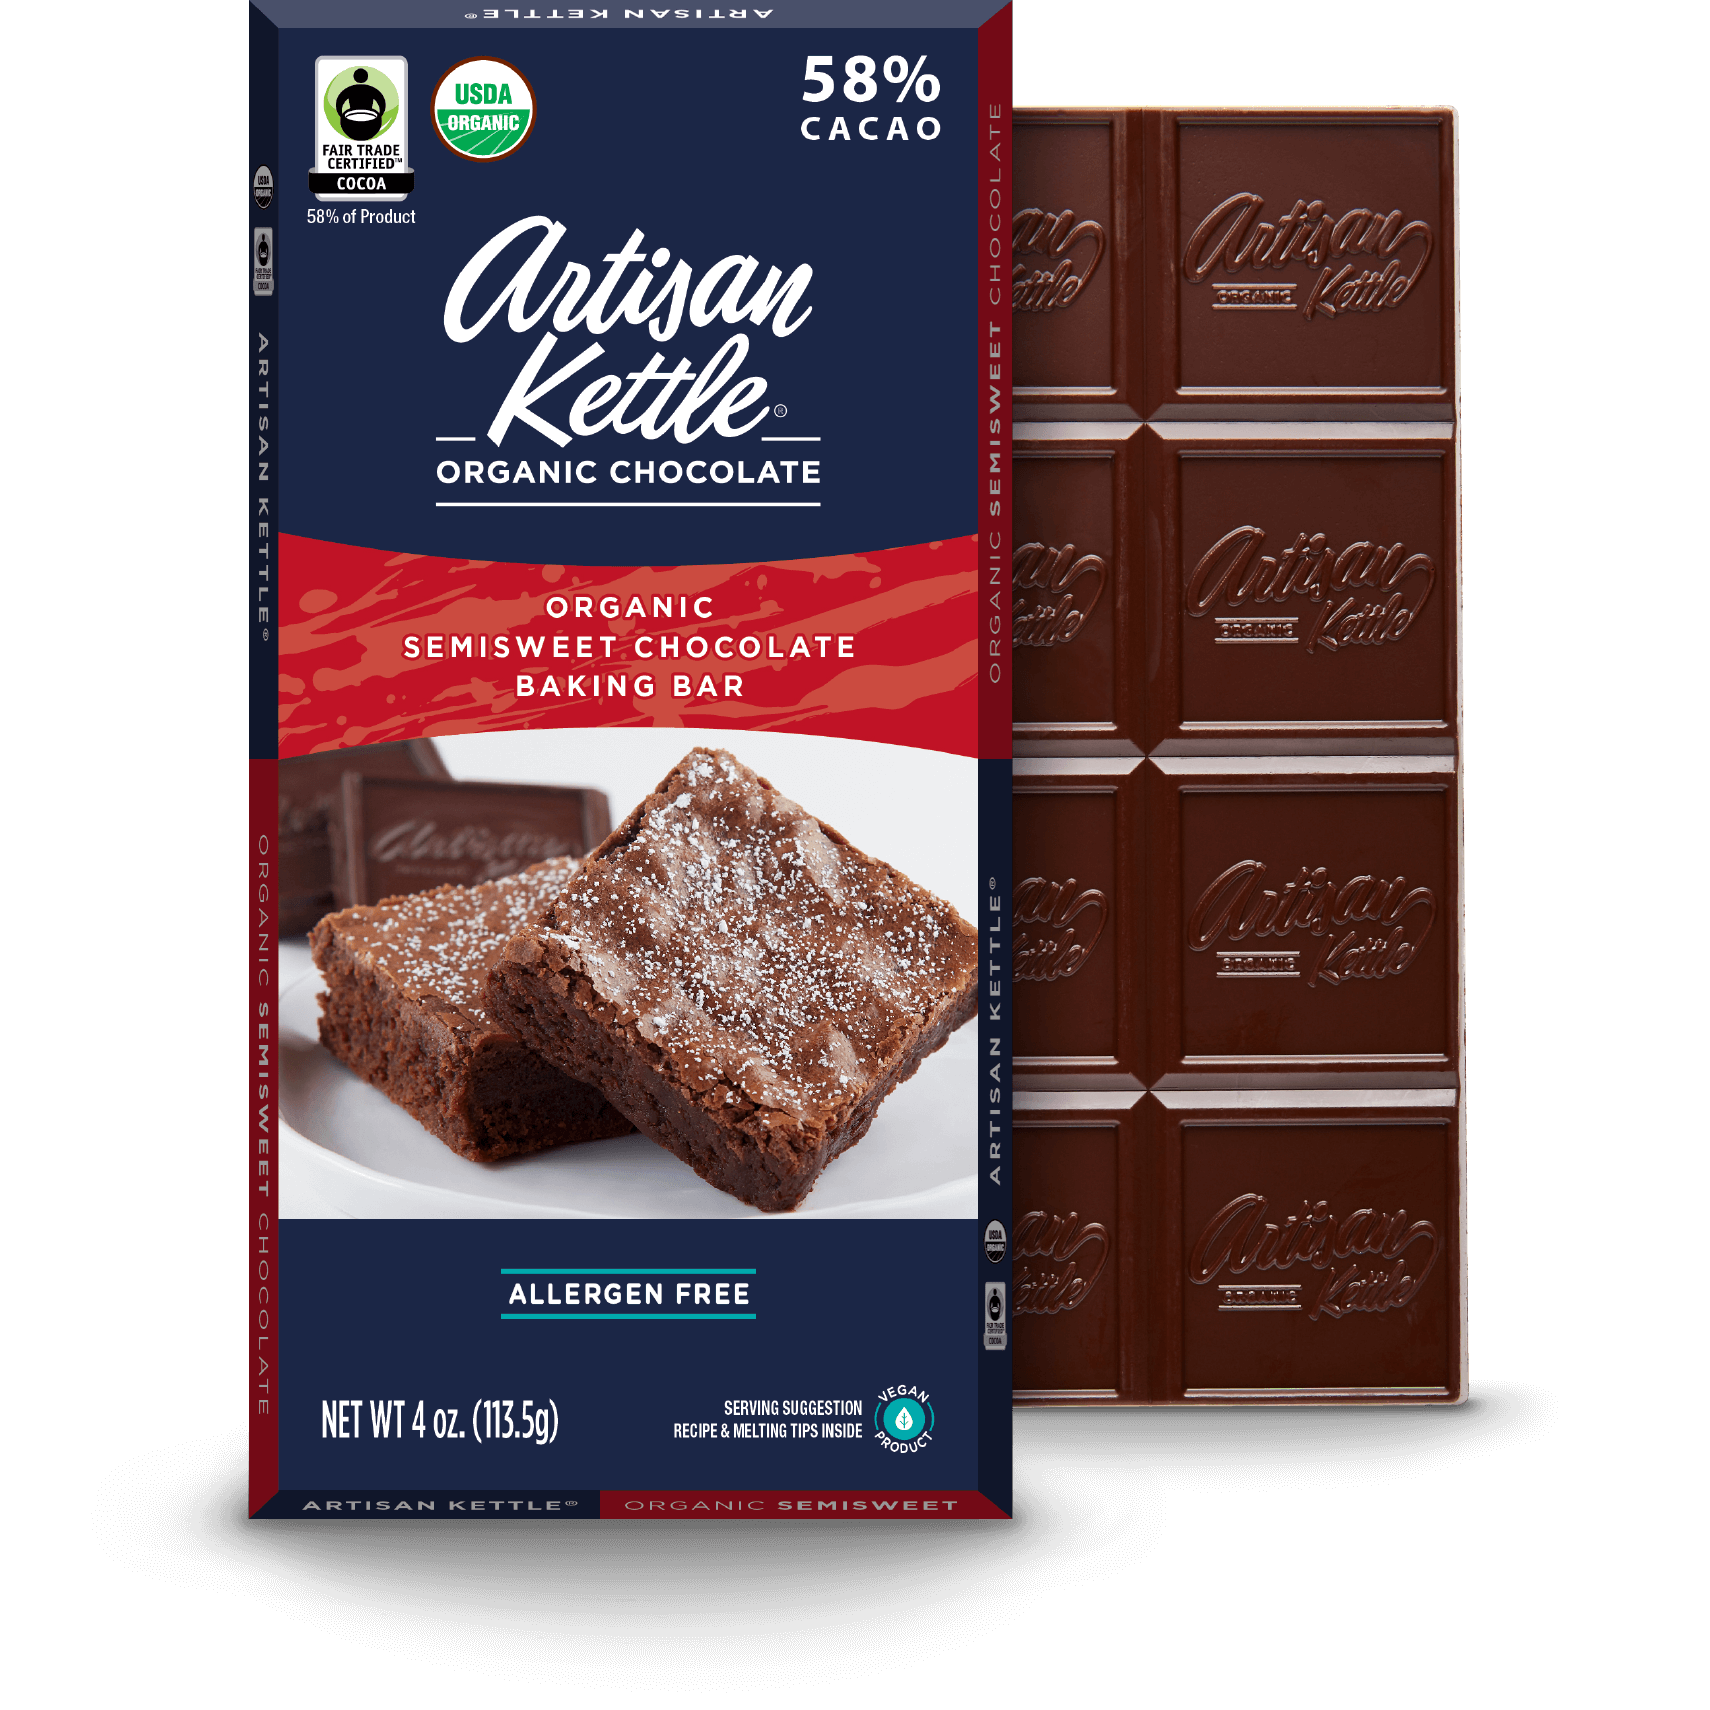 Organic Semisweet Chocolate Baking Bar